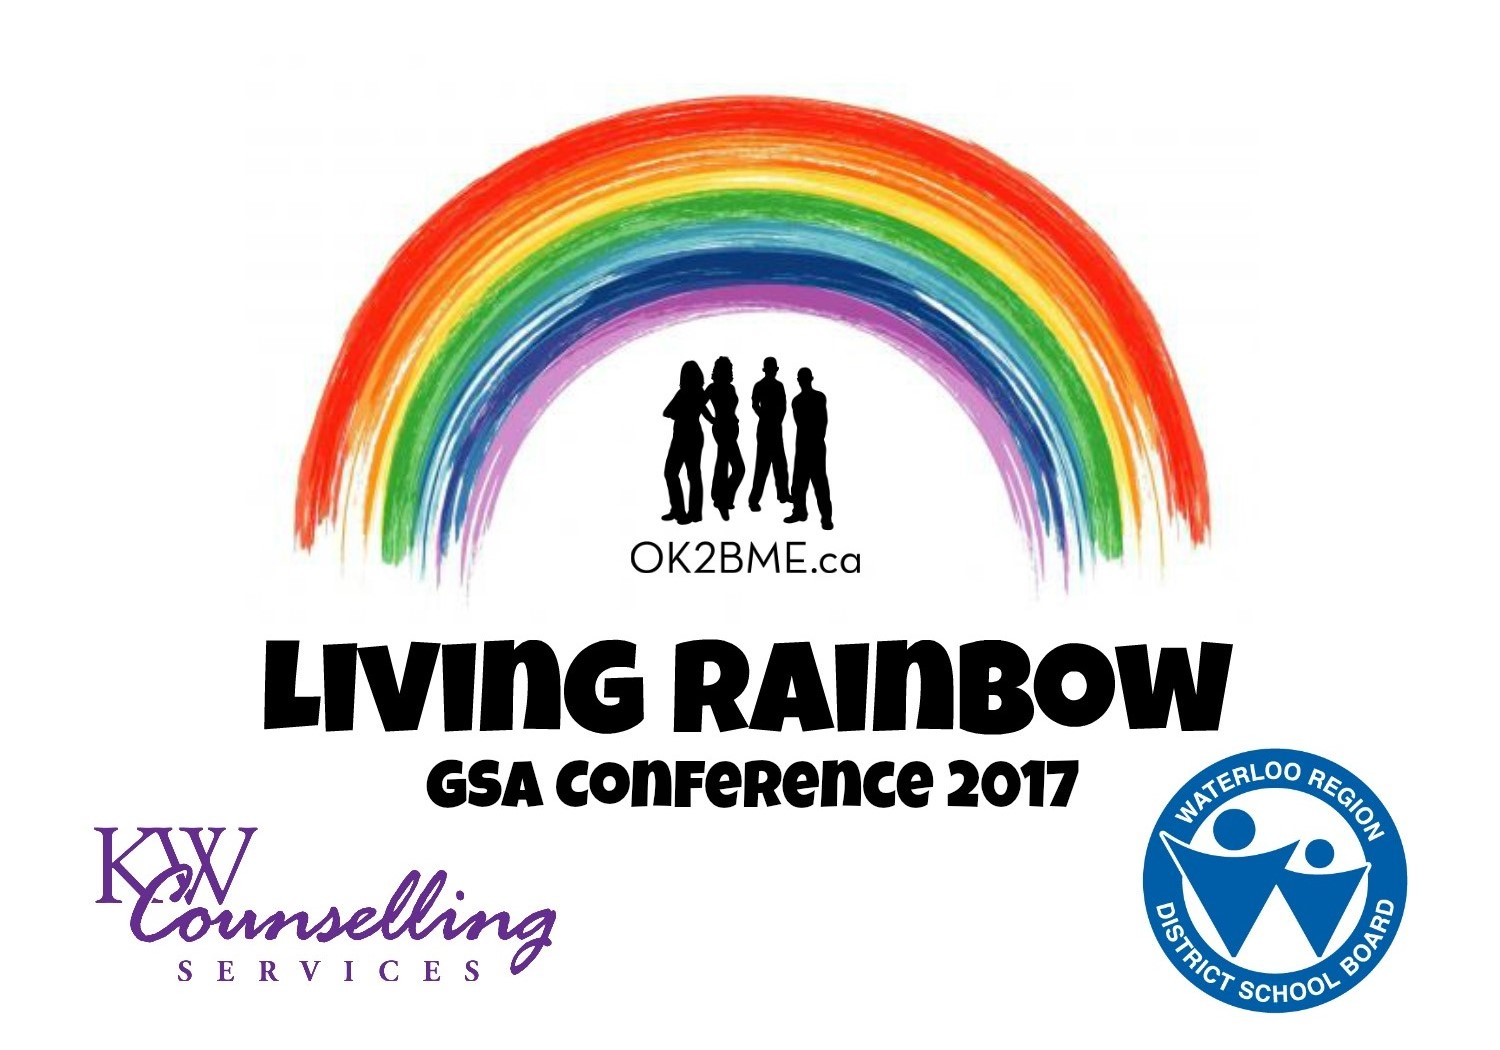 Living Rainbow: GSA Conference 2017 poster